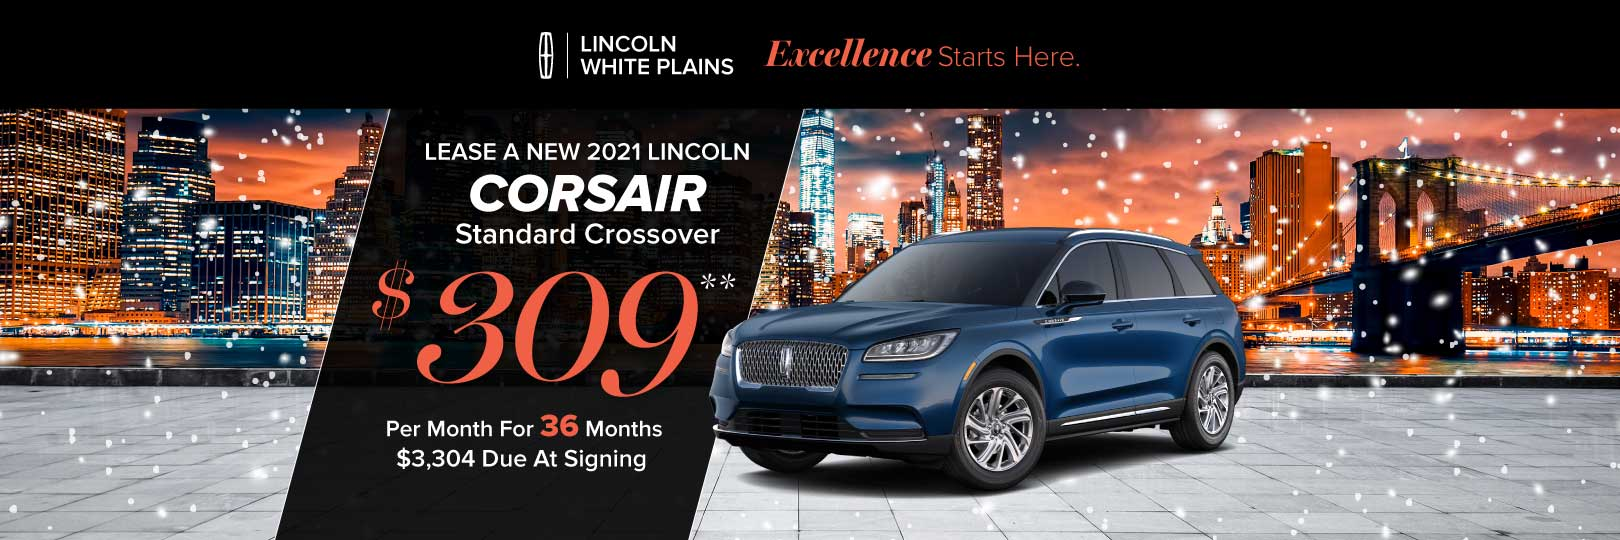 Lincoln Corsair lease deal image